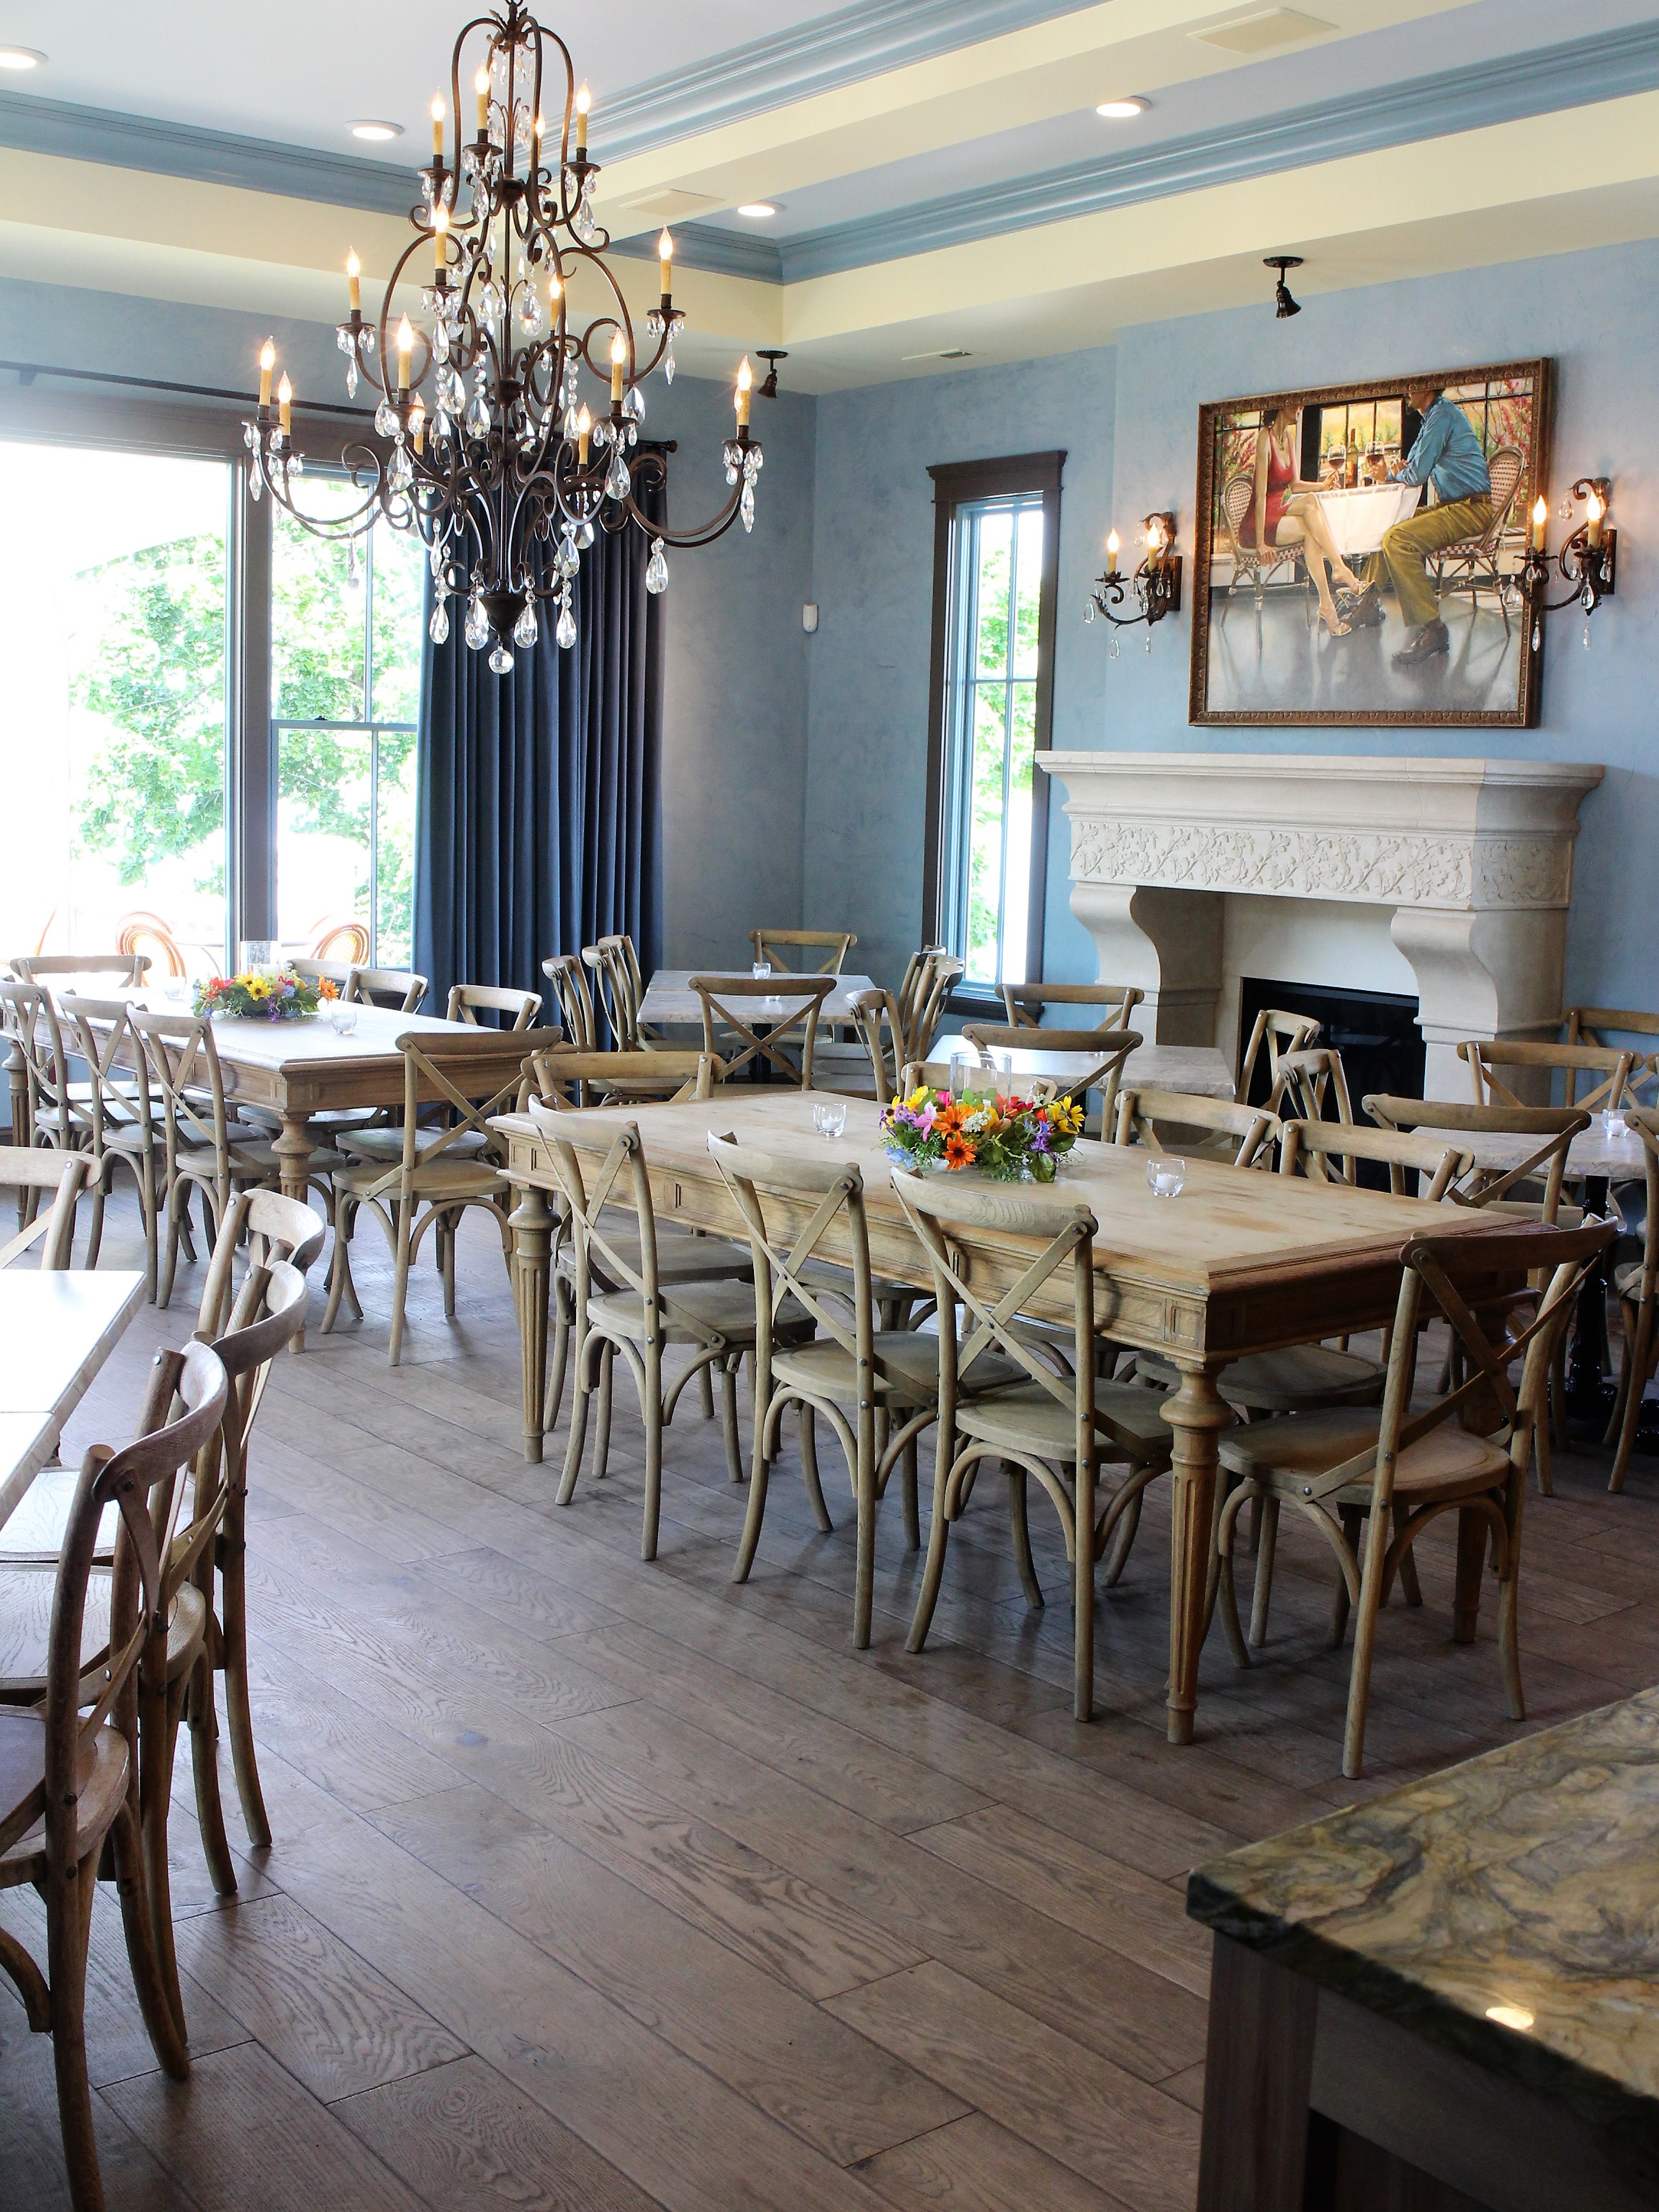 VENUES - Featured: siren song winery